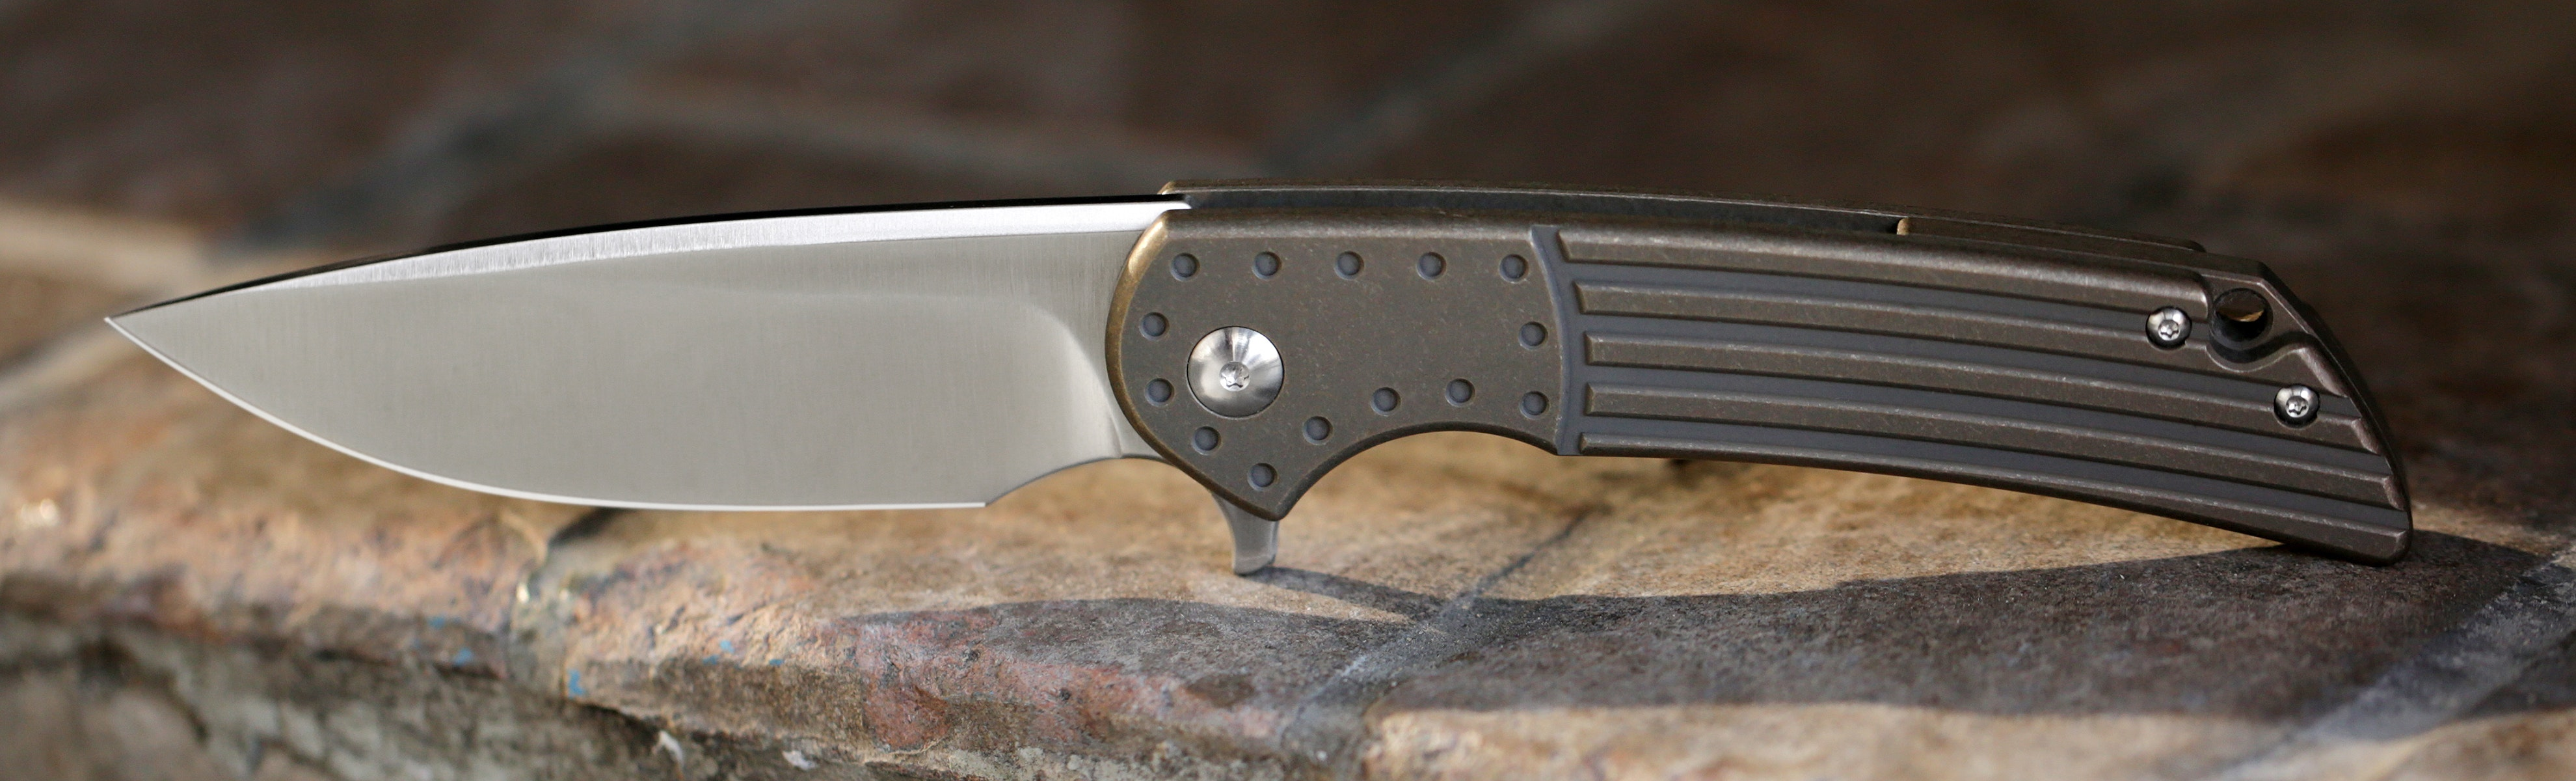 Massdrop x Ferrum Forge Crux S35VN Folding Knife